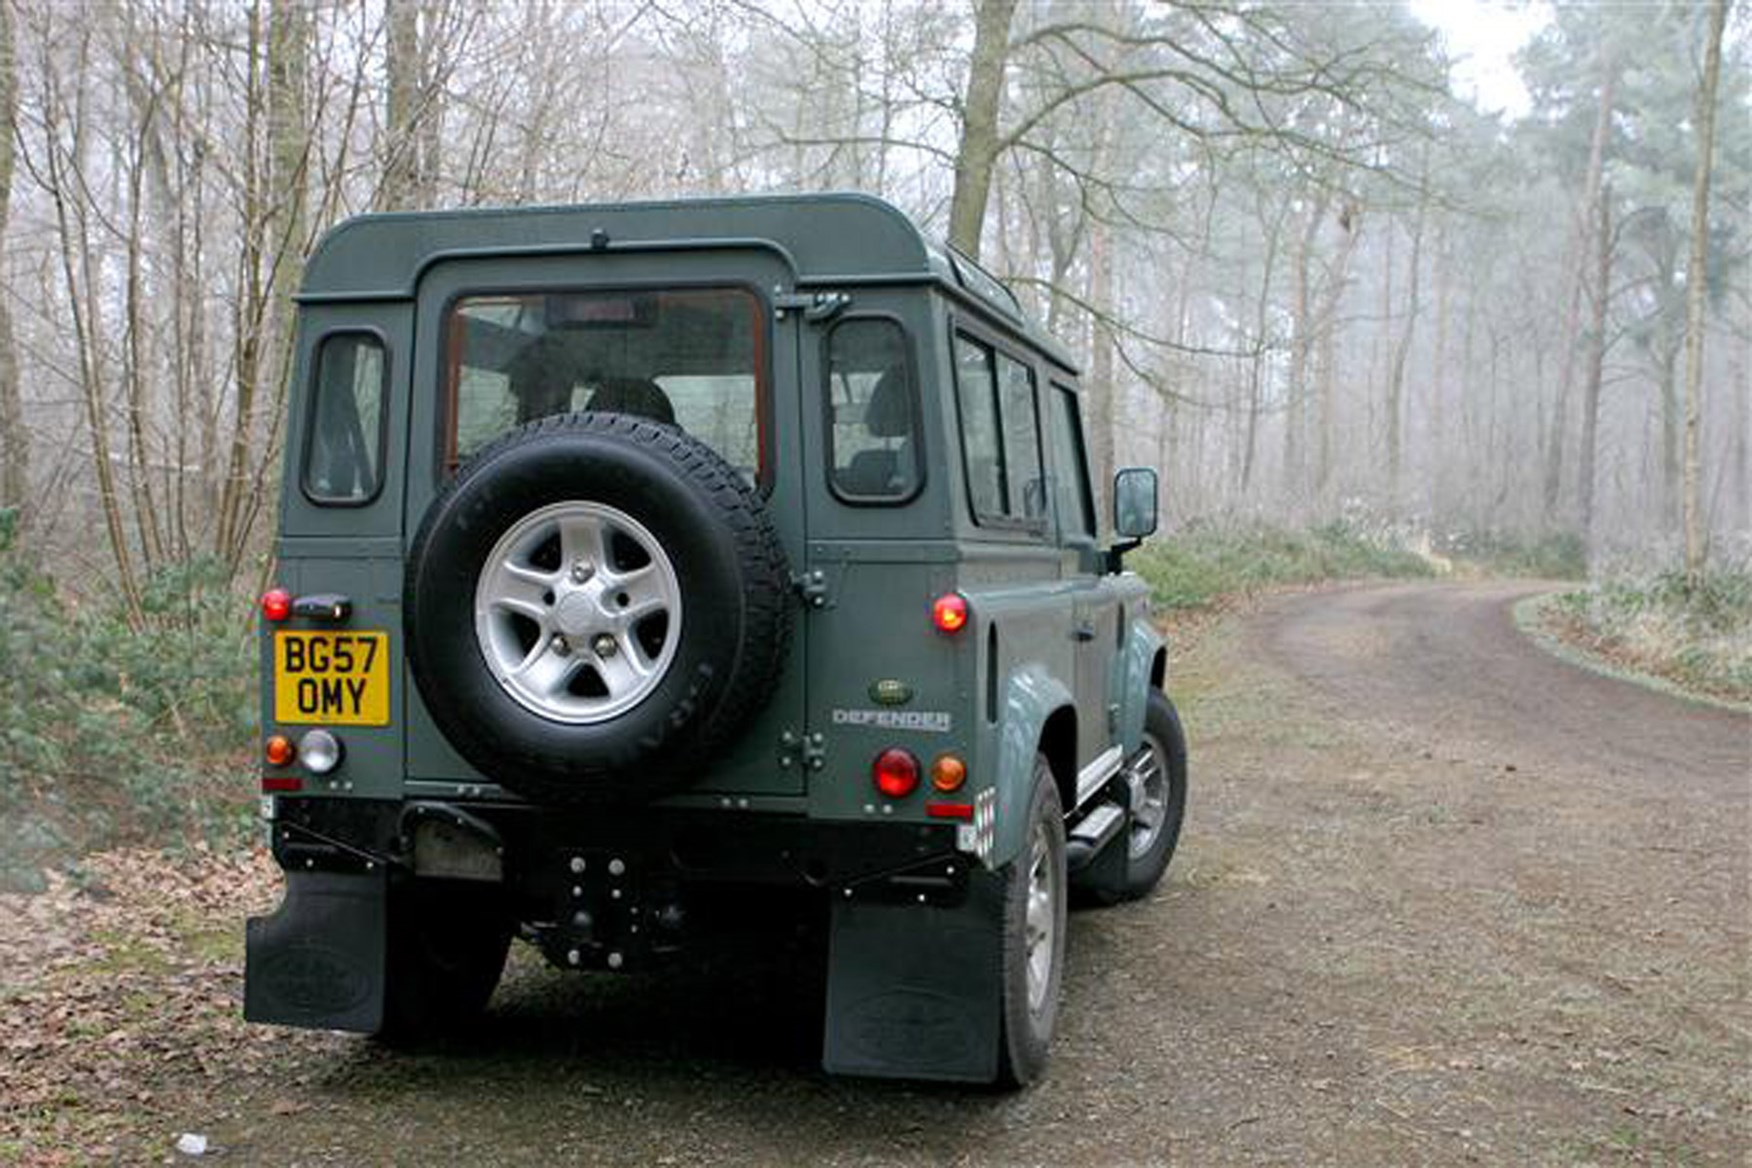 Land Rover Defender 2007-2016 review on Parkers Vans - rear exterior